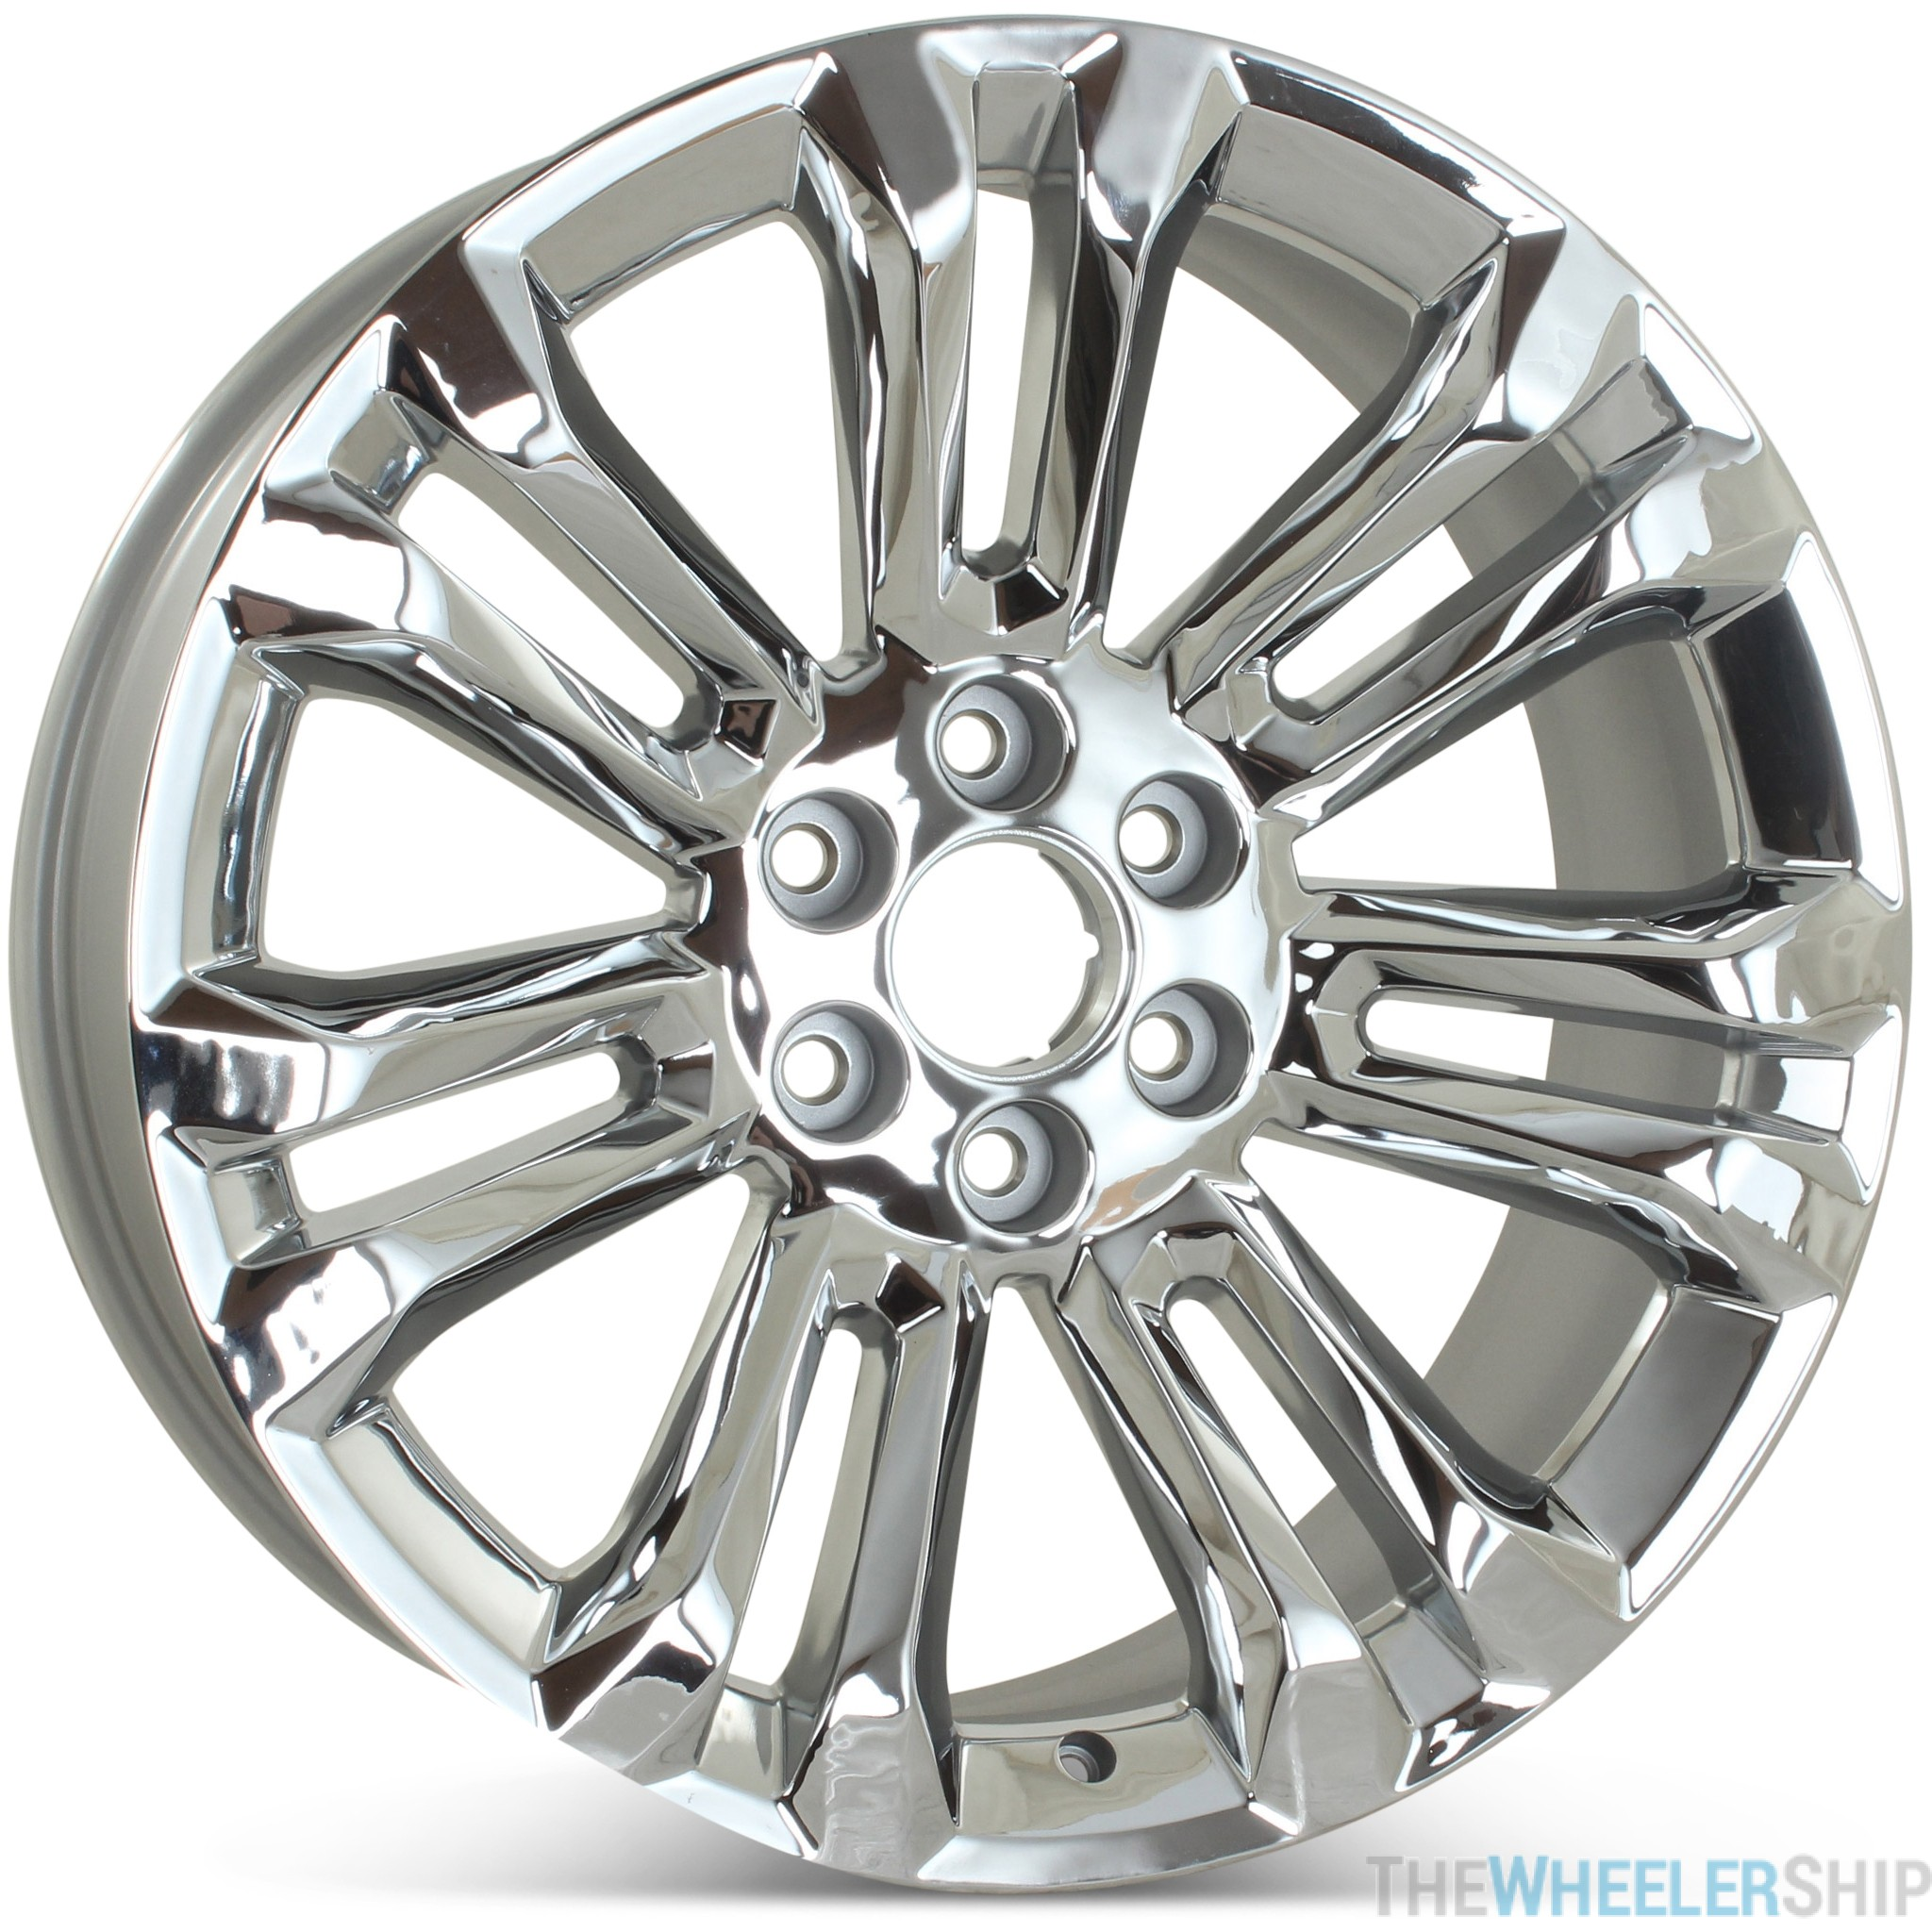 New 22 Alloy Replacement Wheel For Cadillac Escalade 2018 2019 Rim 5666